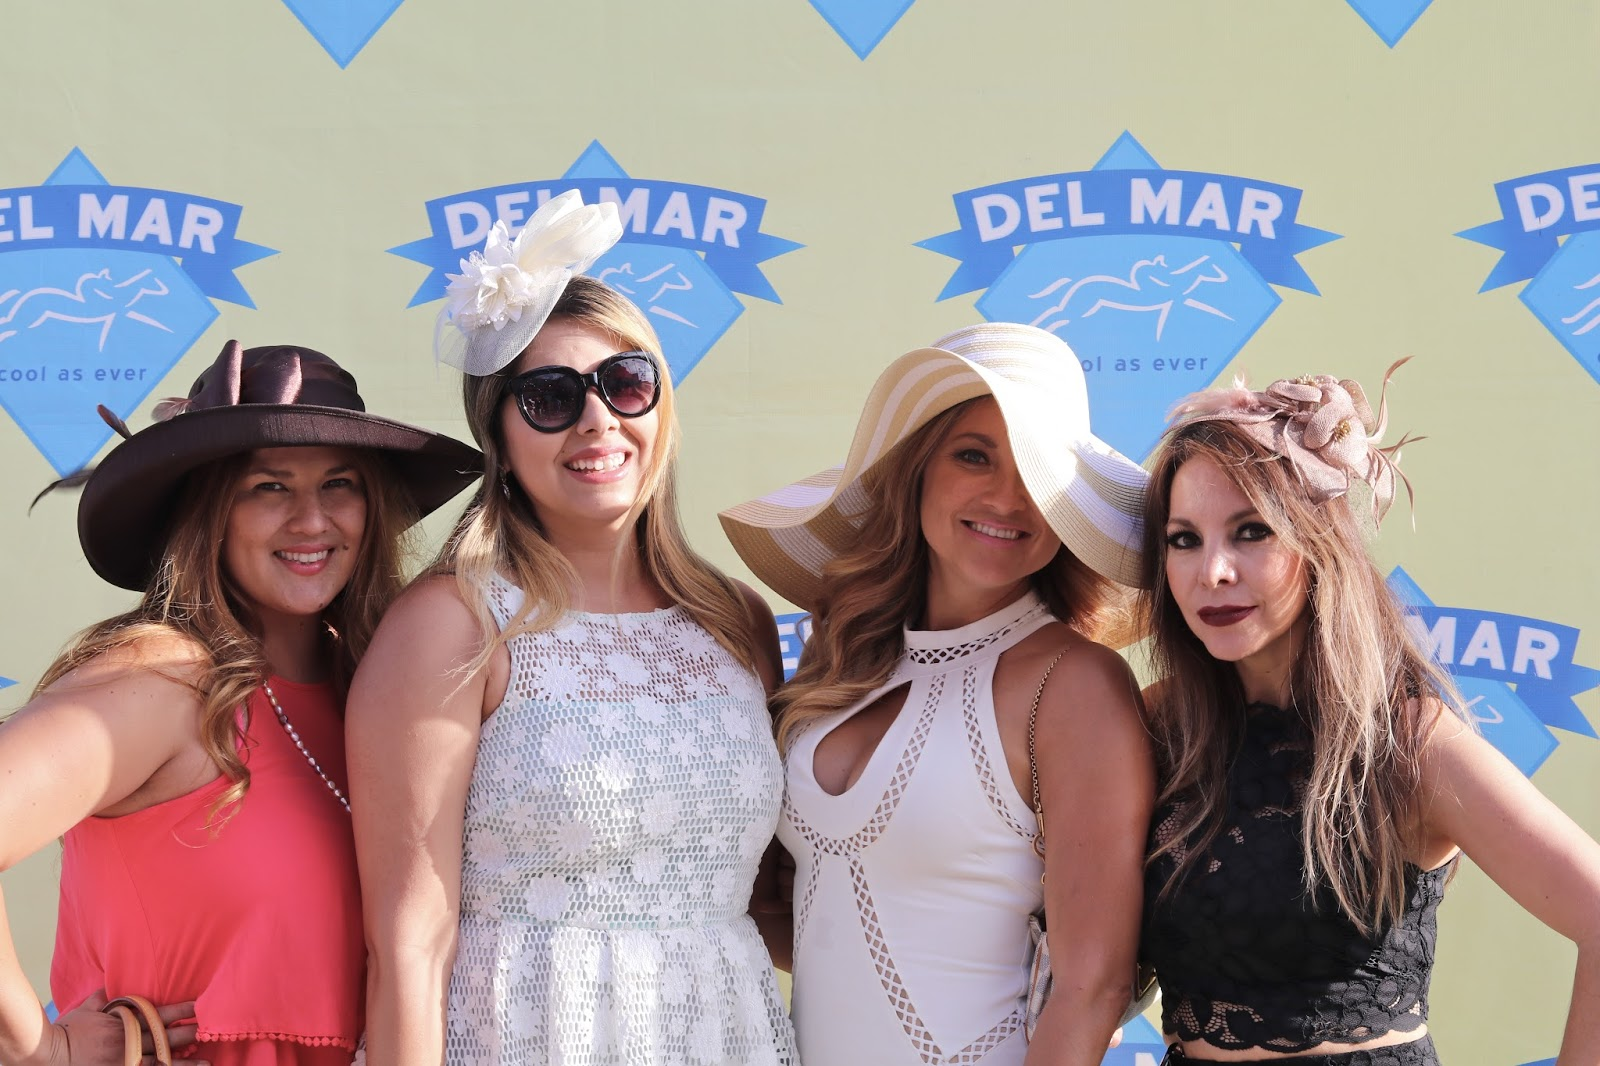 Opening Day at the Del Mar Racetrack 2016 friends, Opening Day at the Del Mar Racetrack 2016 girls, Opening Day at the Del Mar Racetrack 2016 fashion